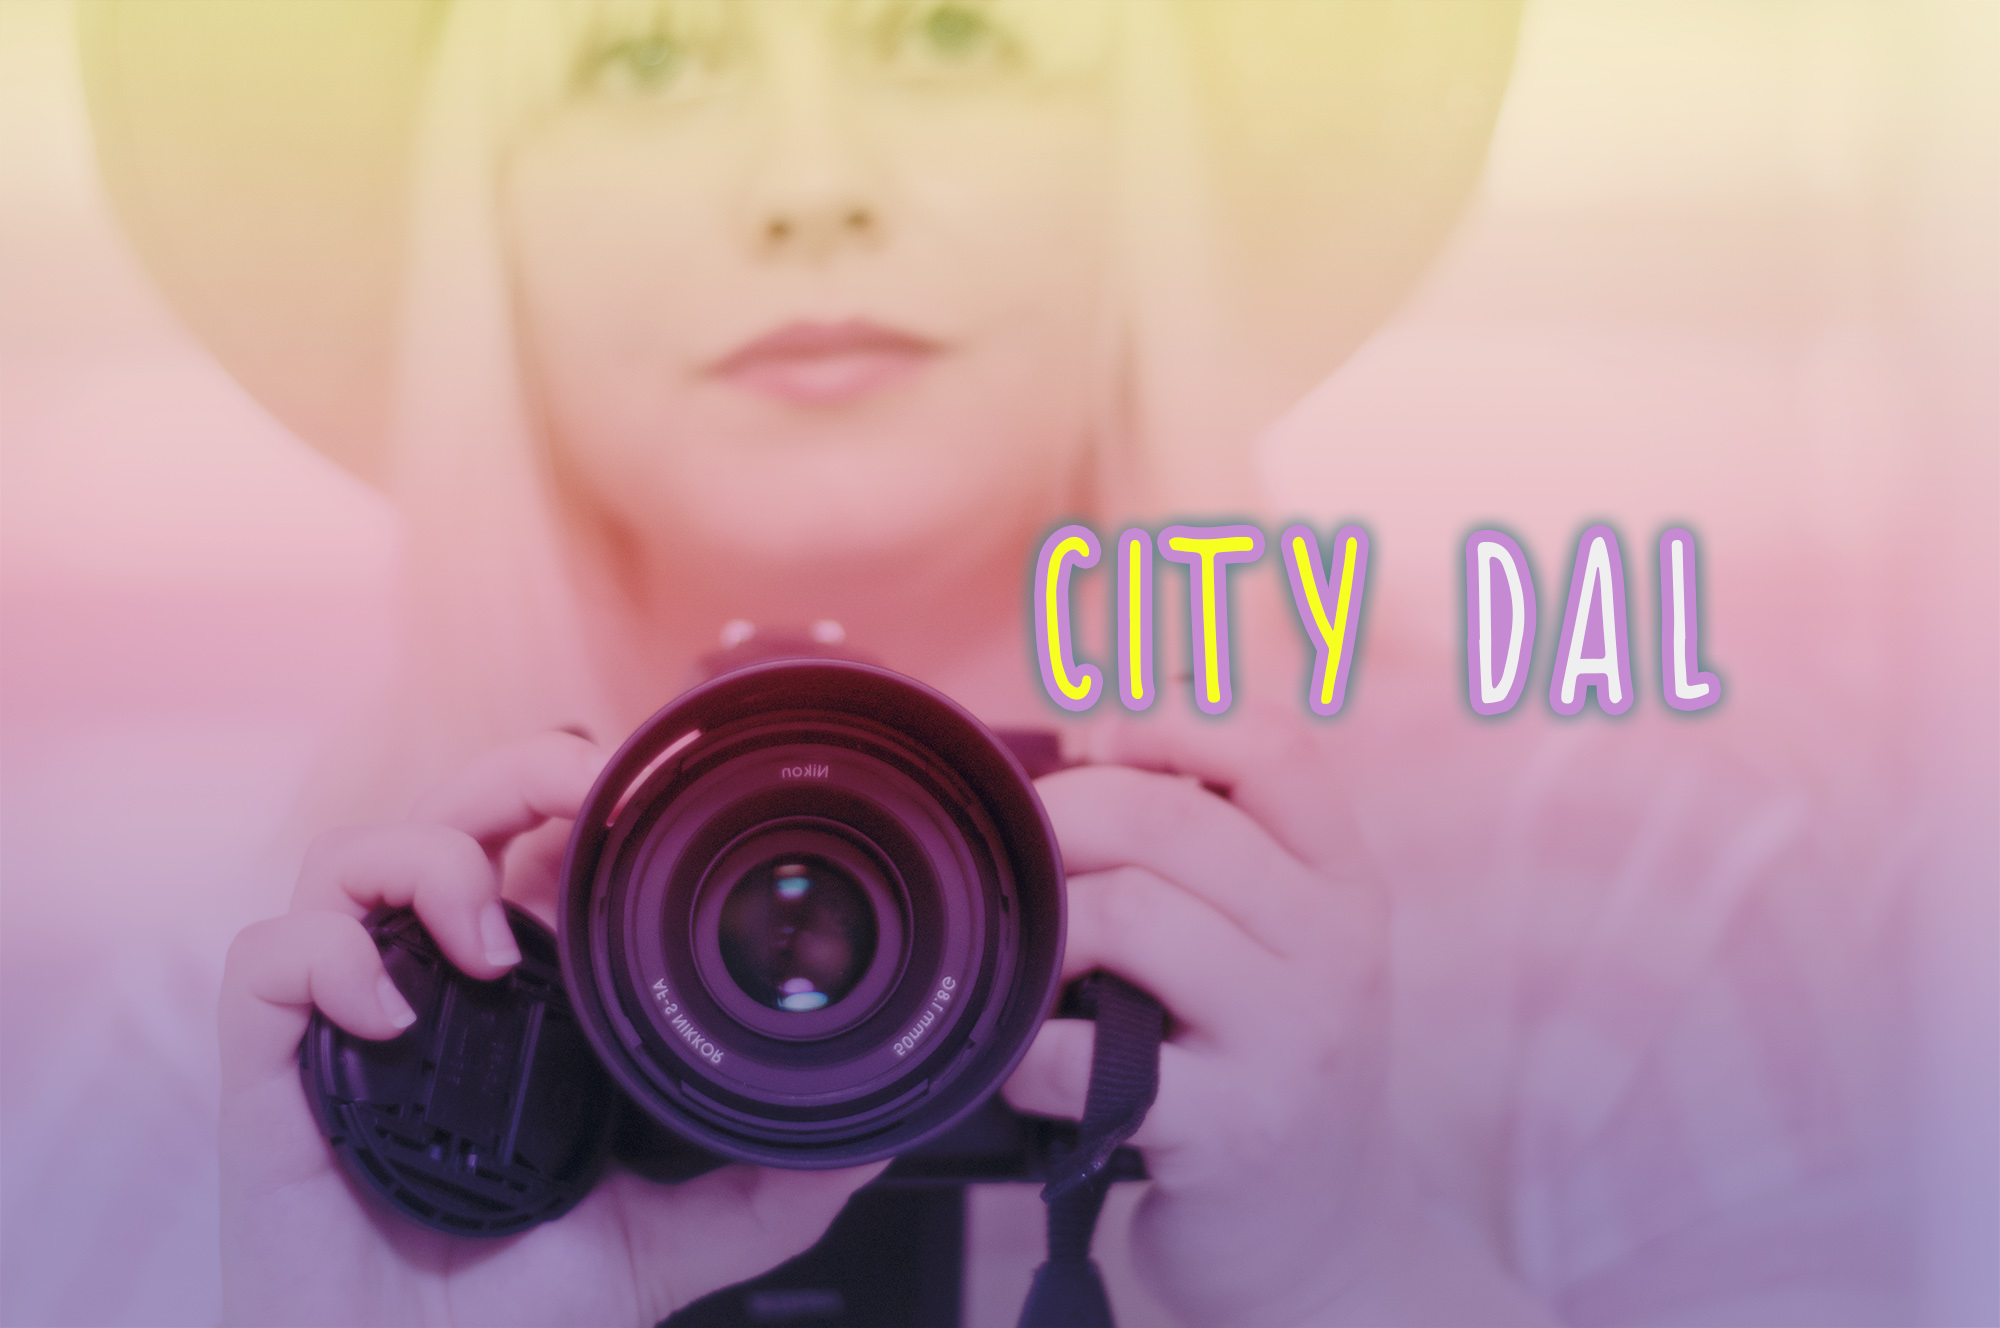 New Instagram Account @Citydal – Dedicated to my Artistic Photography